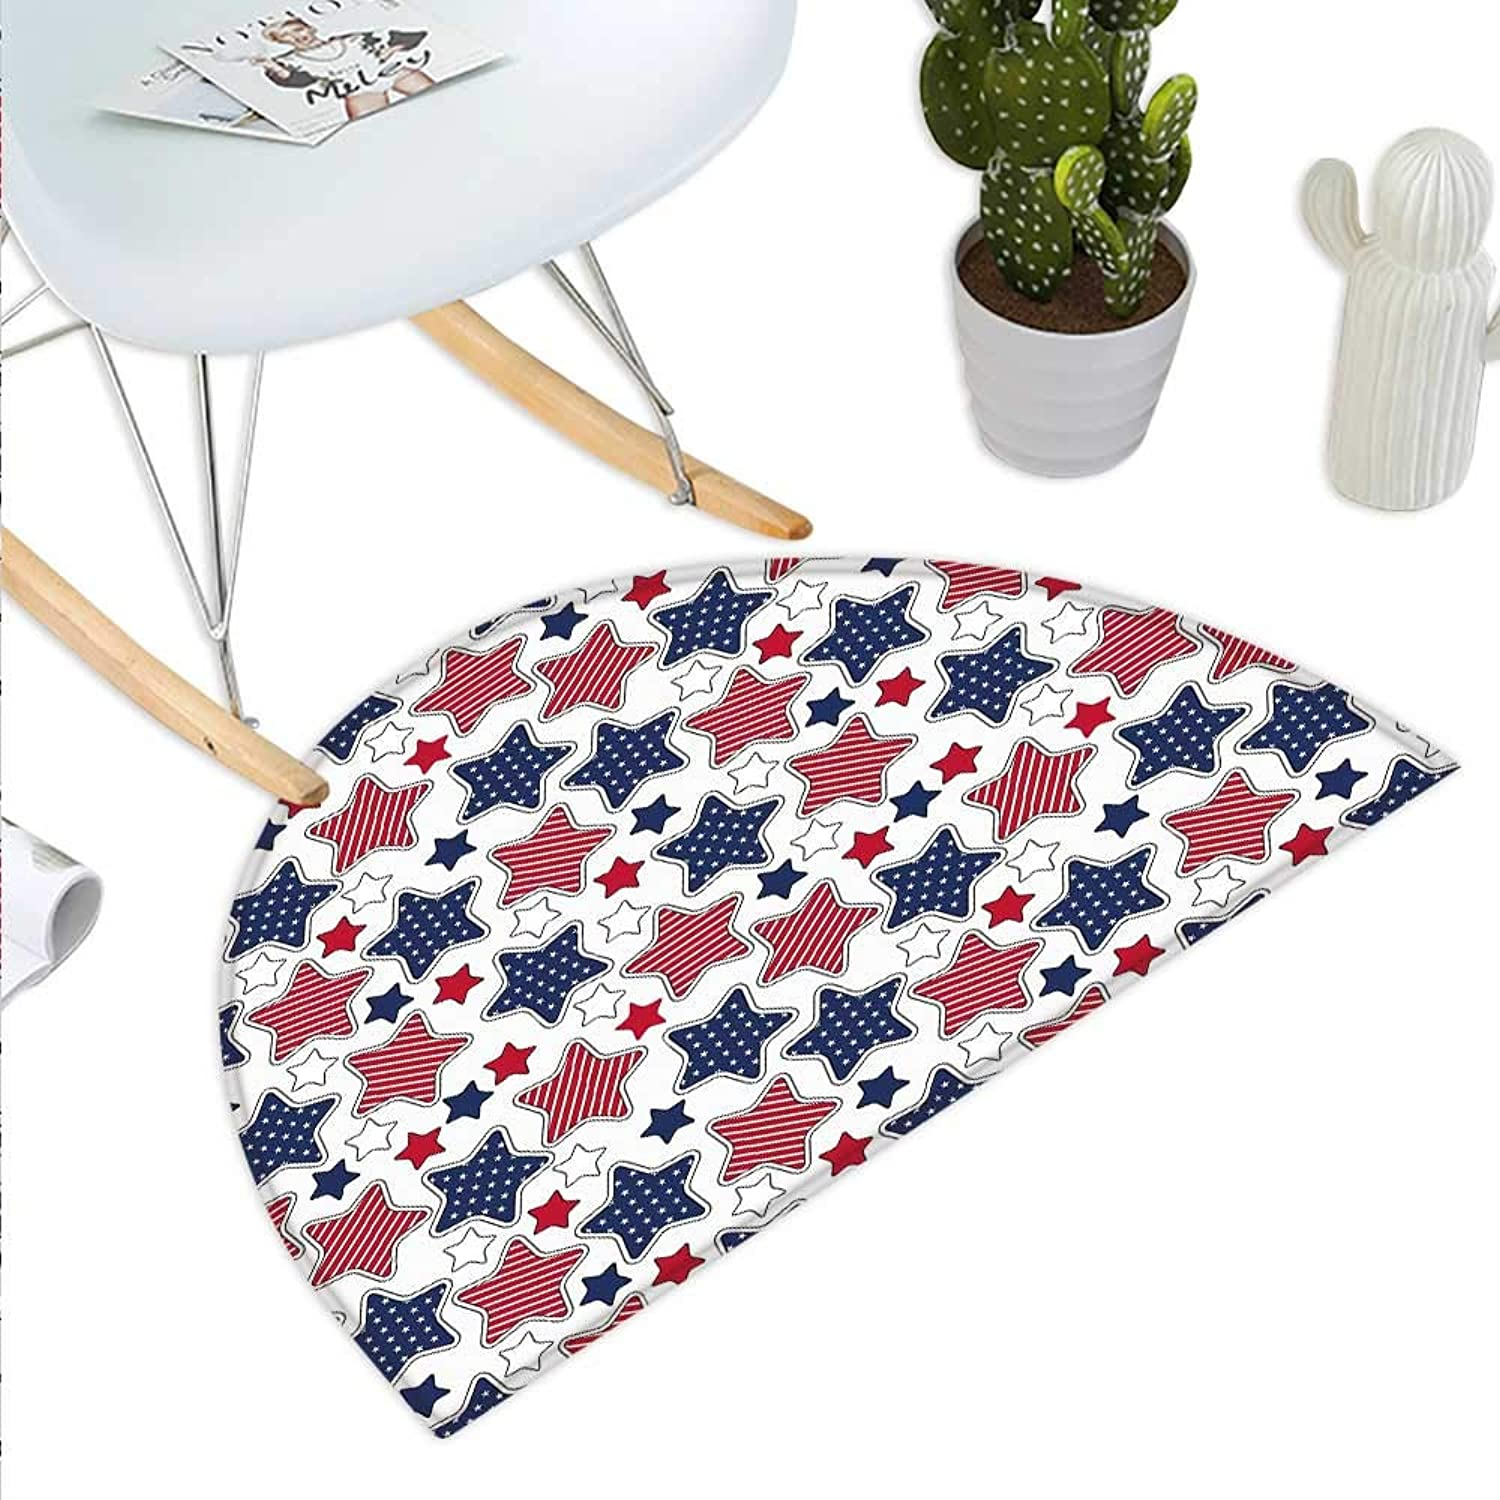 USA Semicircle Doormat Big Star Figures with American Flag Featured Inner Lines Proud Country Design Halfmoon doormats H 43.3  xD 64.9  Indigo Red White